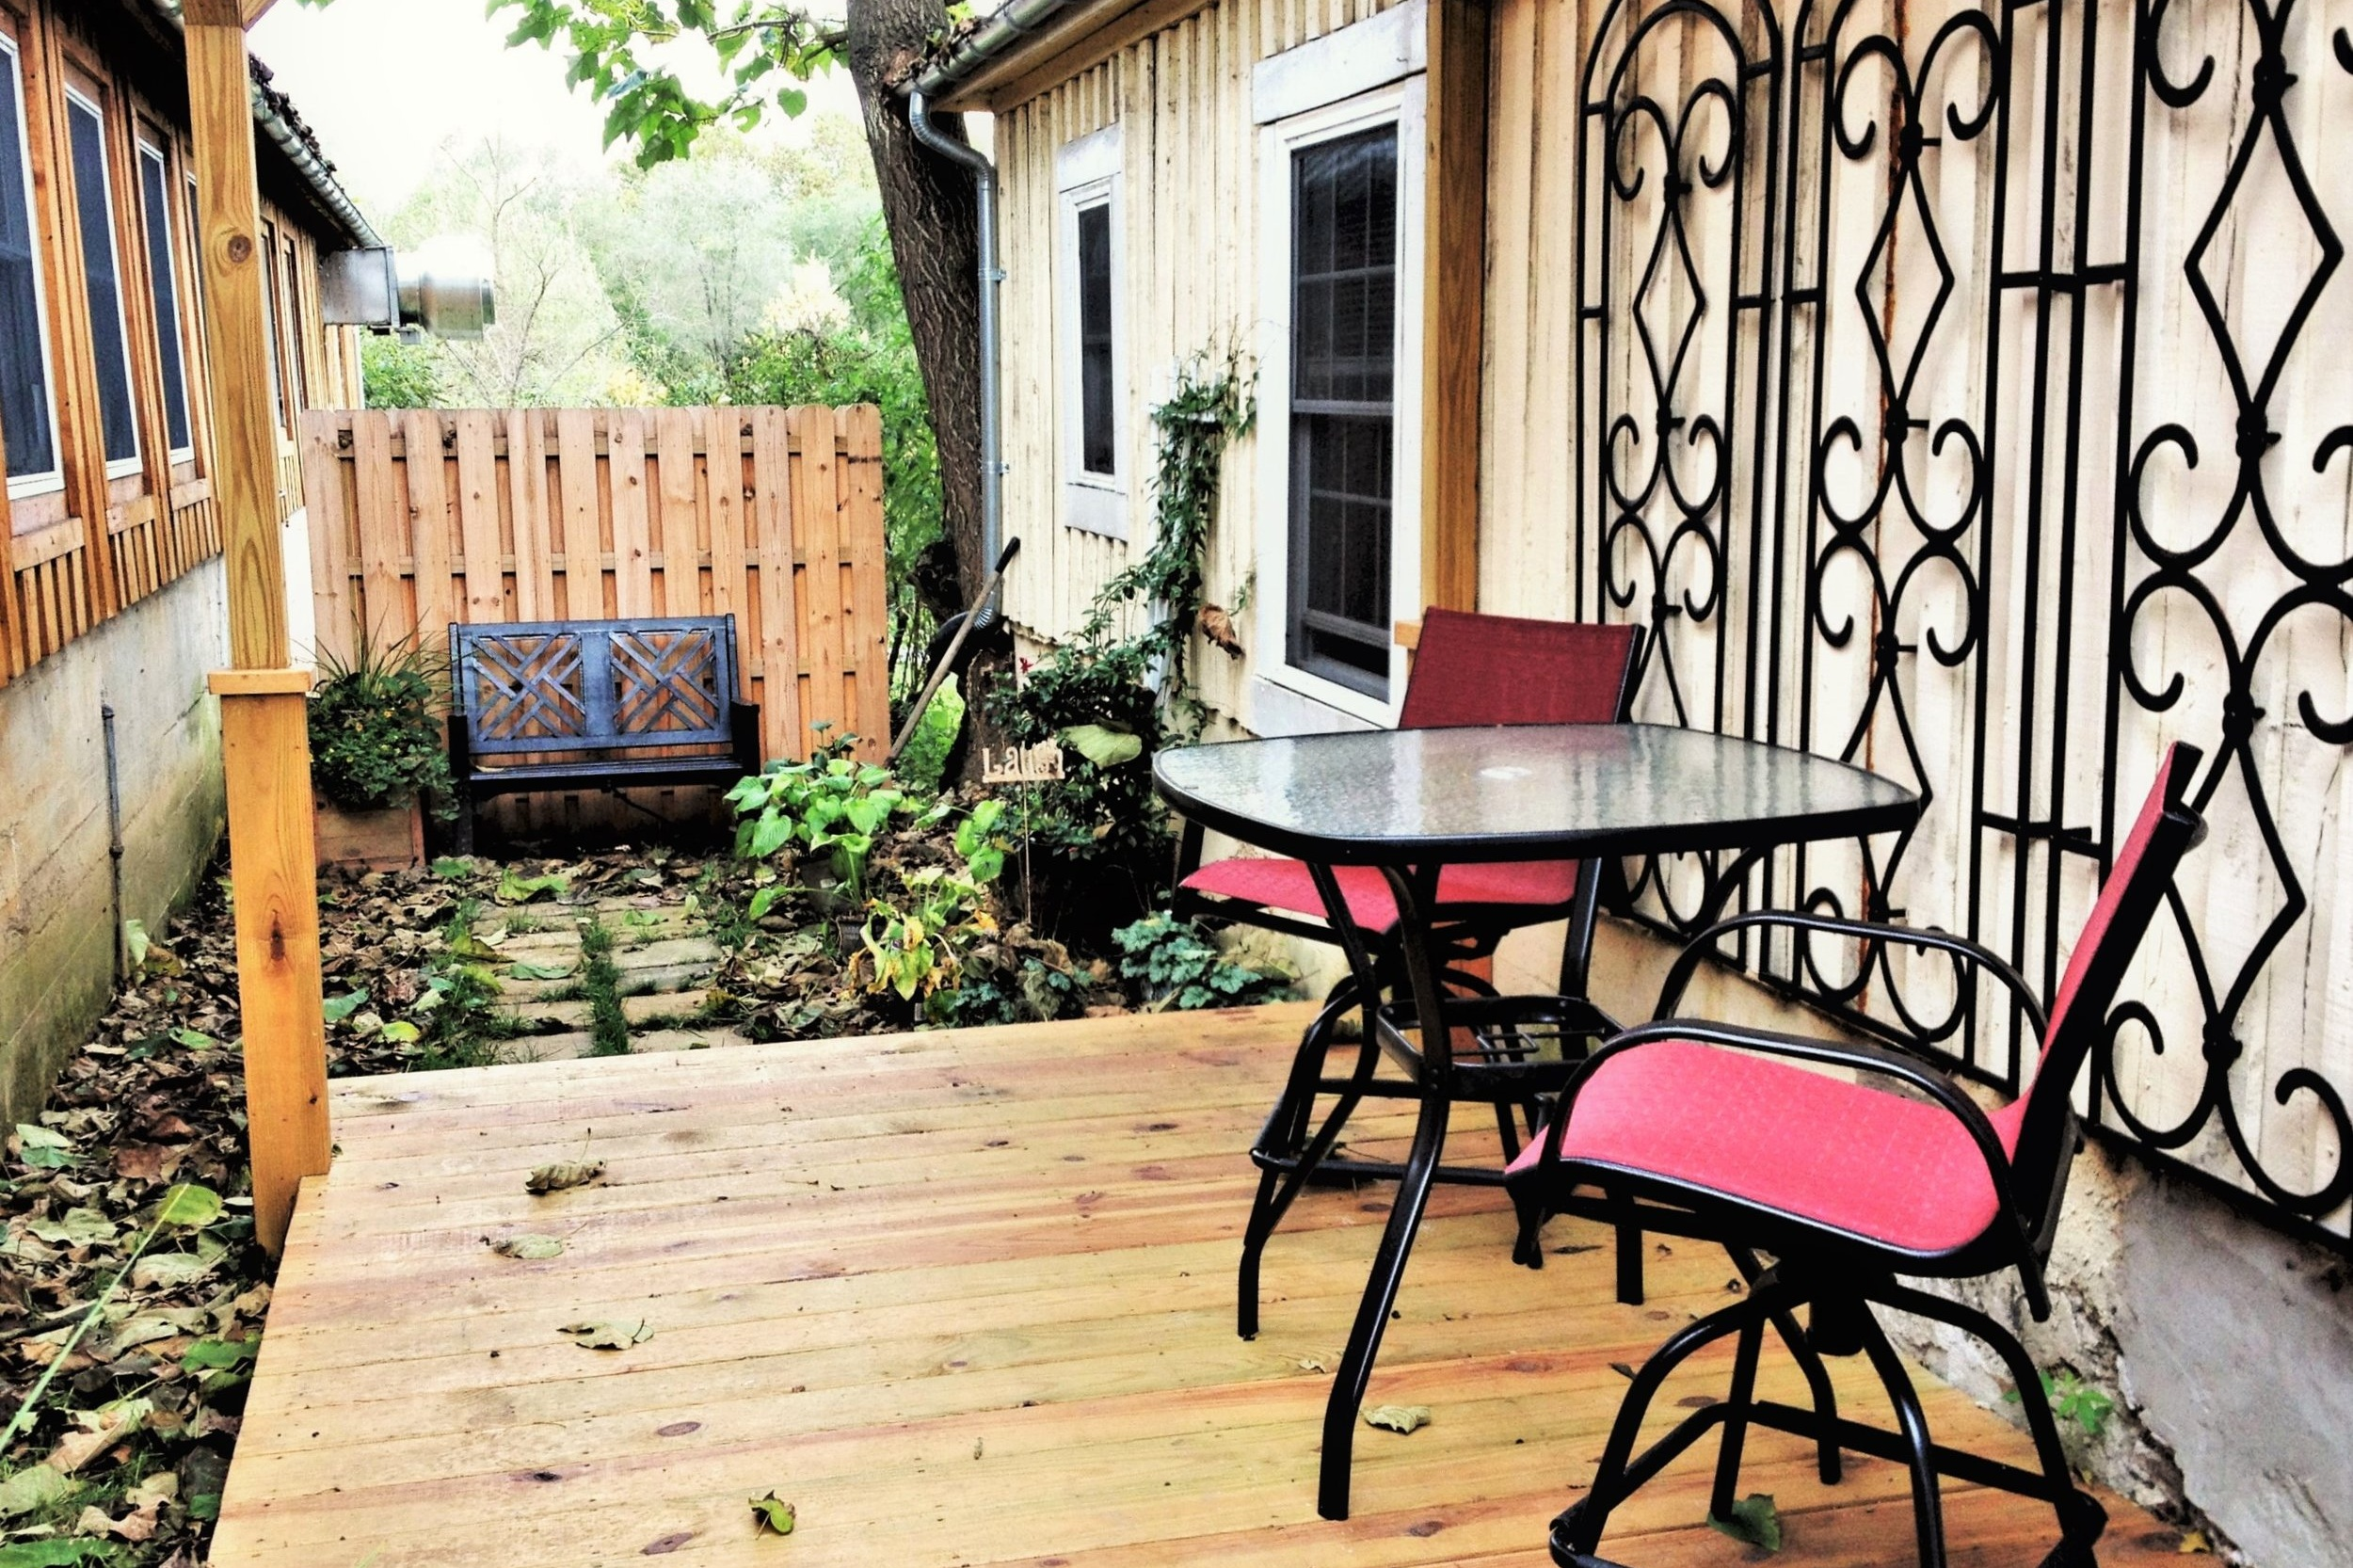 unearthing-writing-retreat-creamery-cottage-patio.jpg